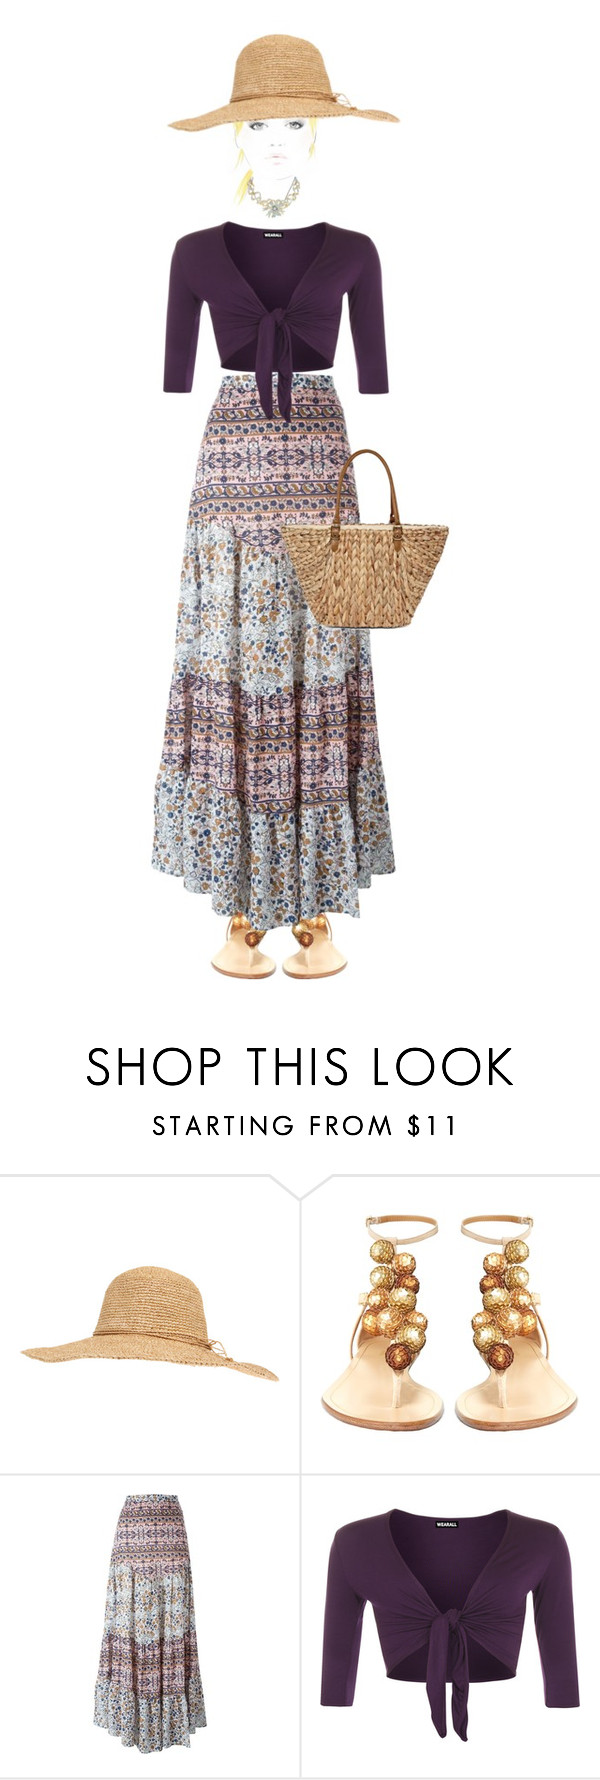 """""""Bohemian doll """" by kim-mcculley ❤ liked on Polyvore featuring Calypso St. Barth, Aquazzura, See by Chloé, WearAll and Straw Studios"""